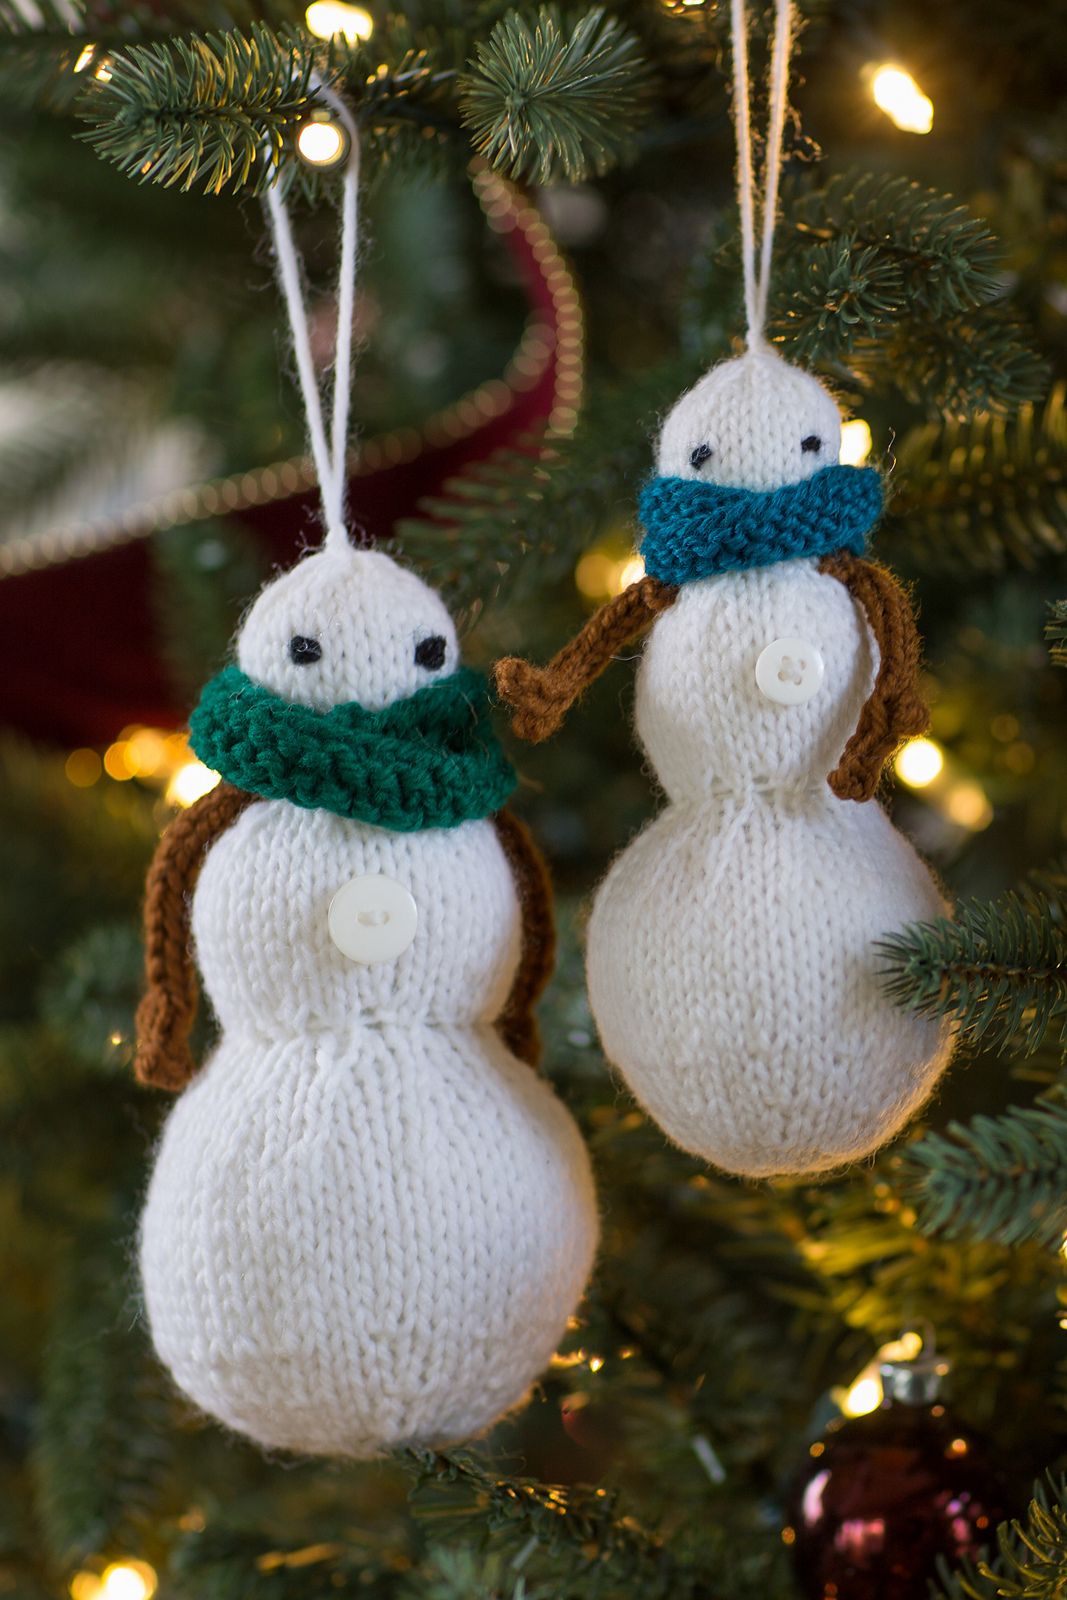 Knitting Pattern for Snowman Family